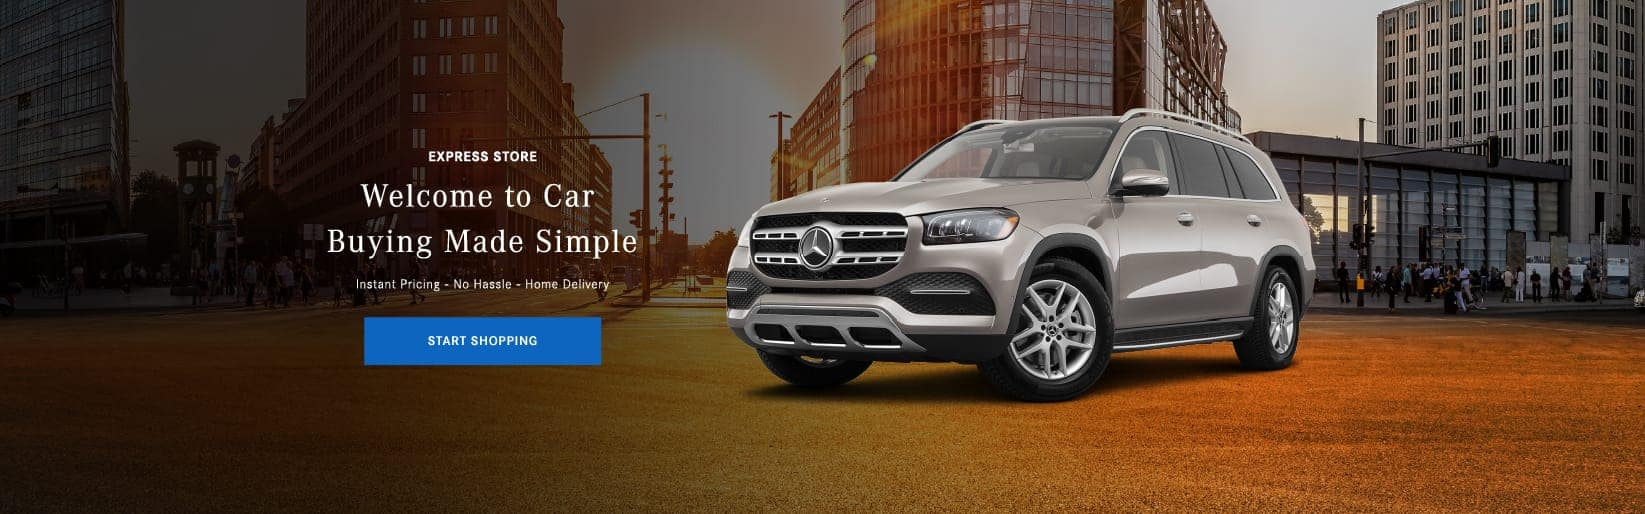 Express Store - Welcome to Car Buying Made Simple